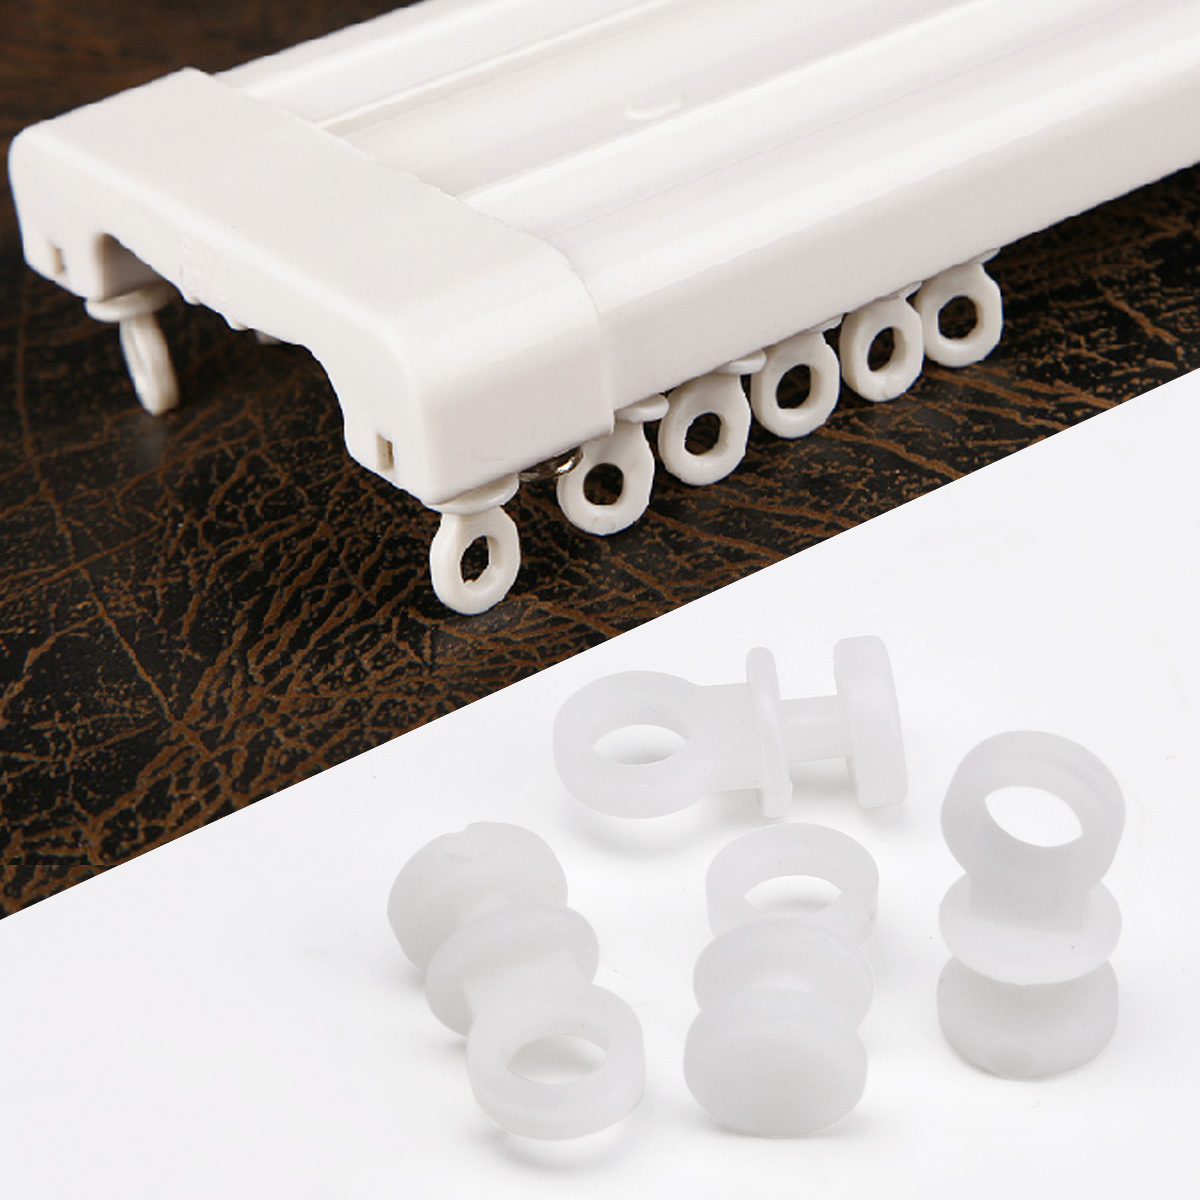 50Pcs Plastic Curtain Track Rollers Glider Carriers Slide Wheels Rail Hooks